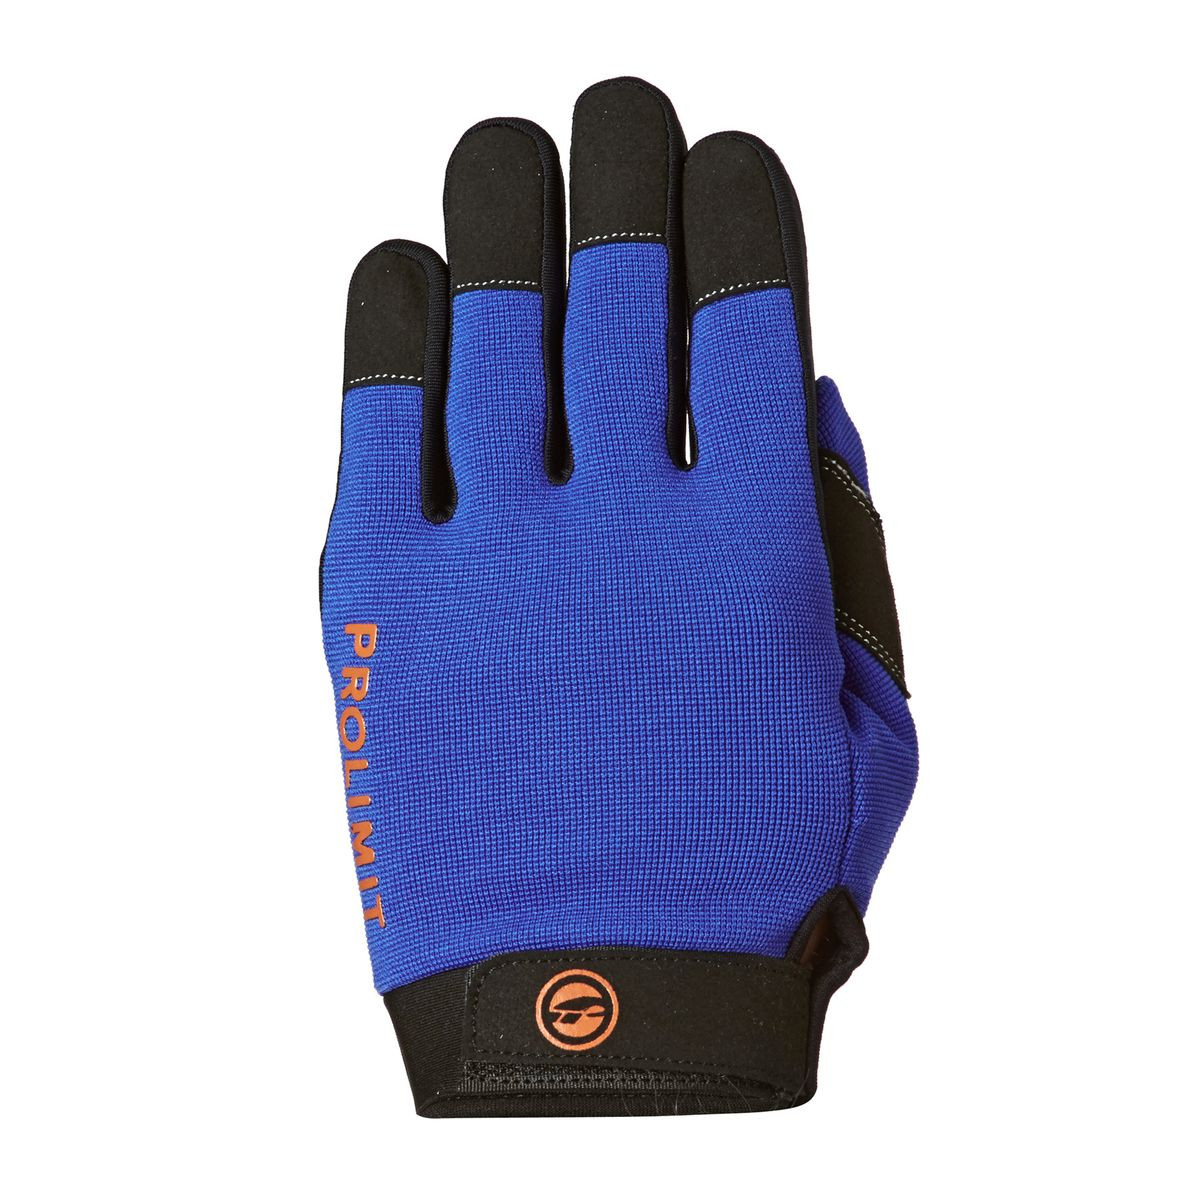 Prolimit Summer Long Finger Wetsuit Gloves - Black